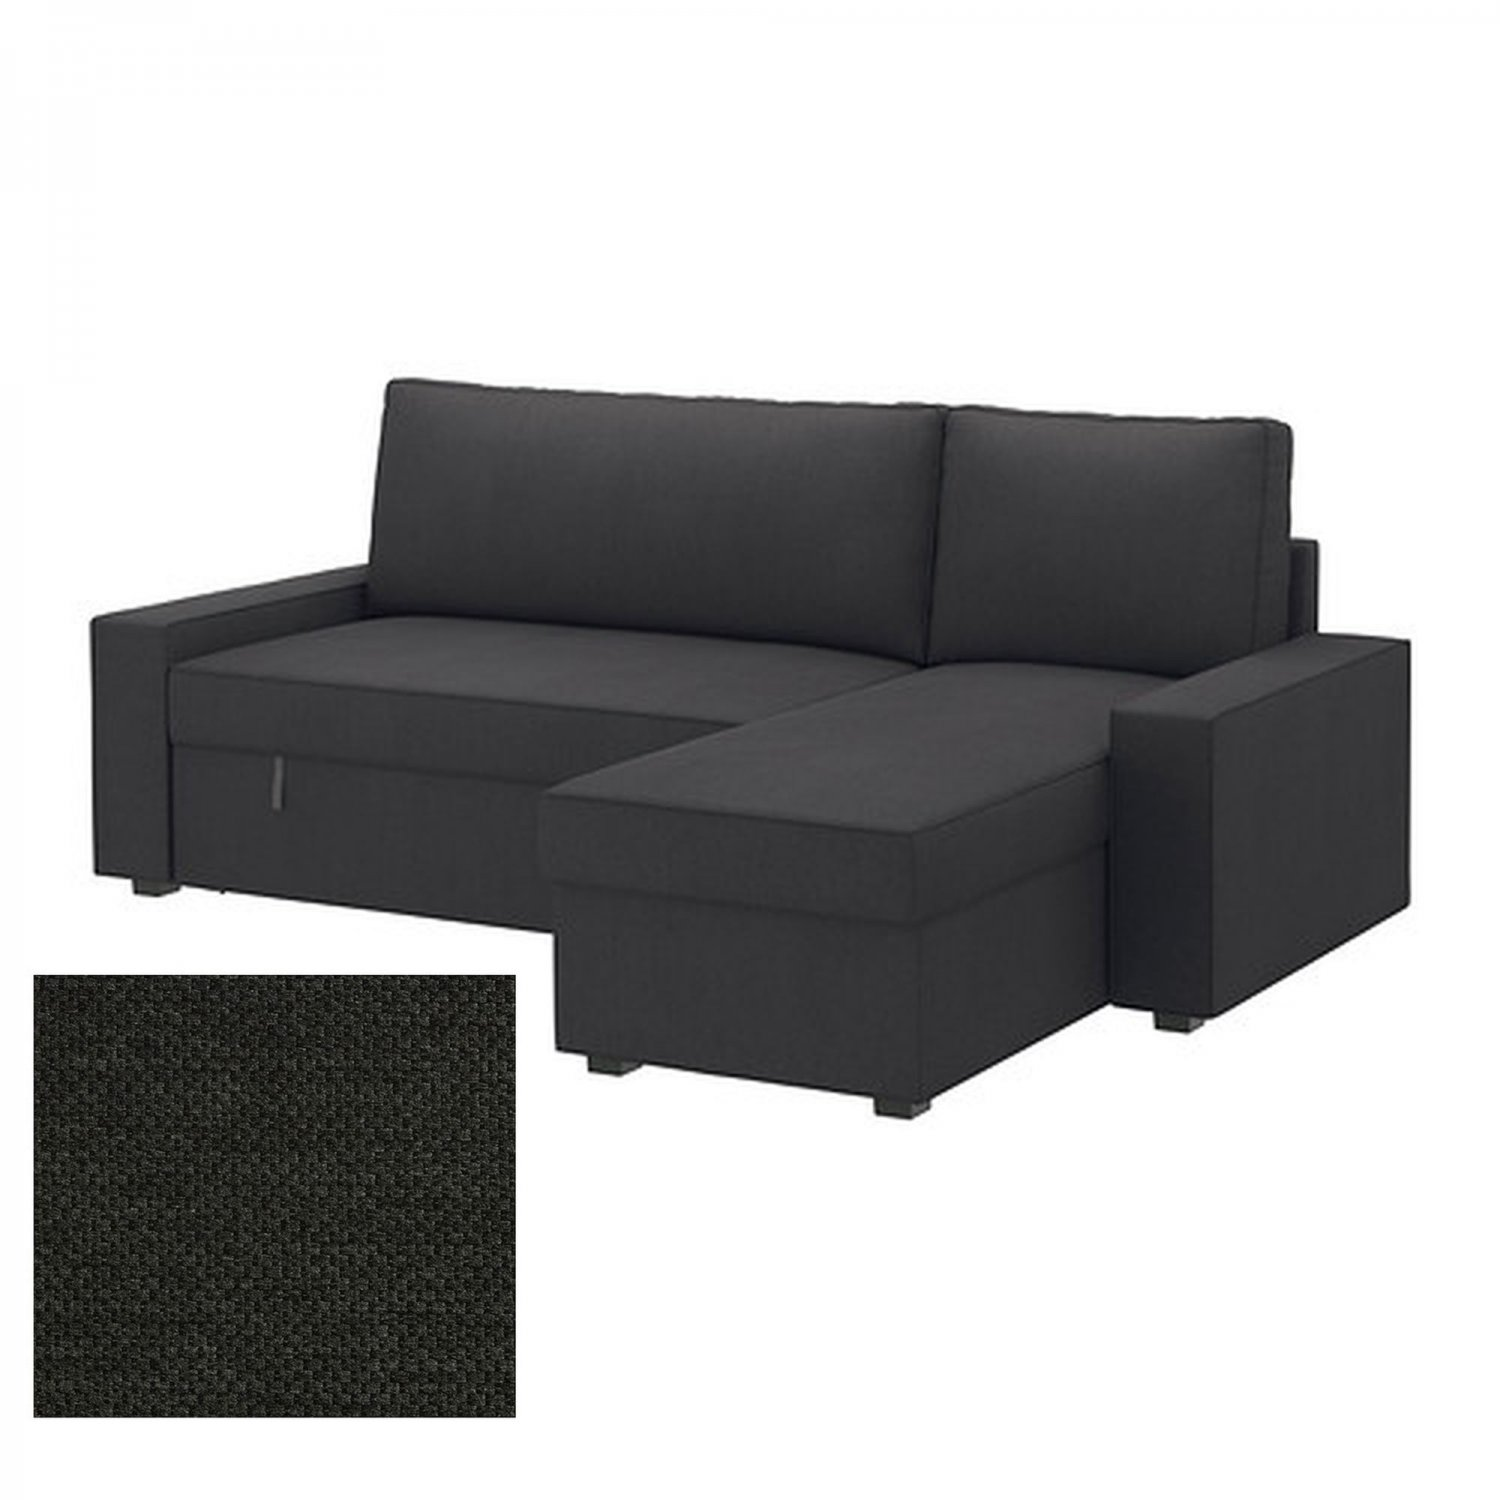 Ikea vilasund sofa bed with chaise longue slipcover for Chaise longue bed